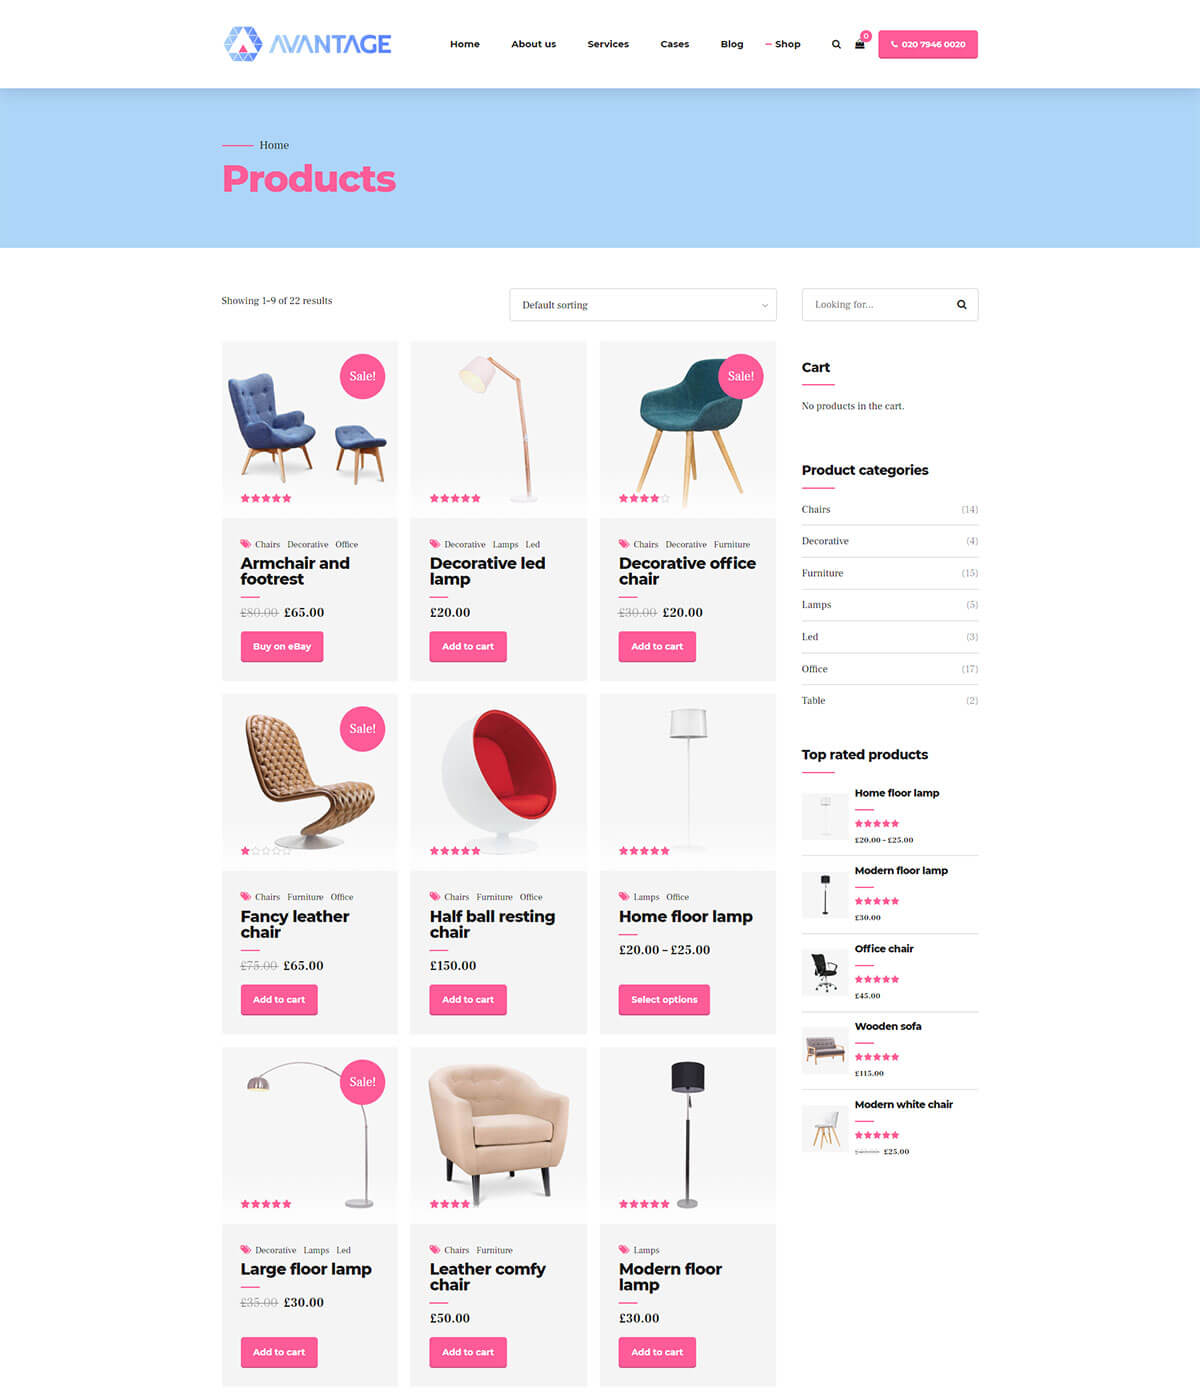 http://avantage.bold-themes.com/wp-content/uploads/2019/05/financial-14-shop.jpg